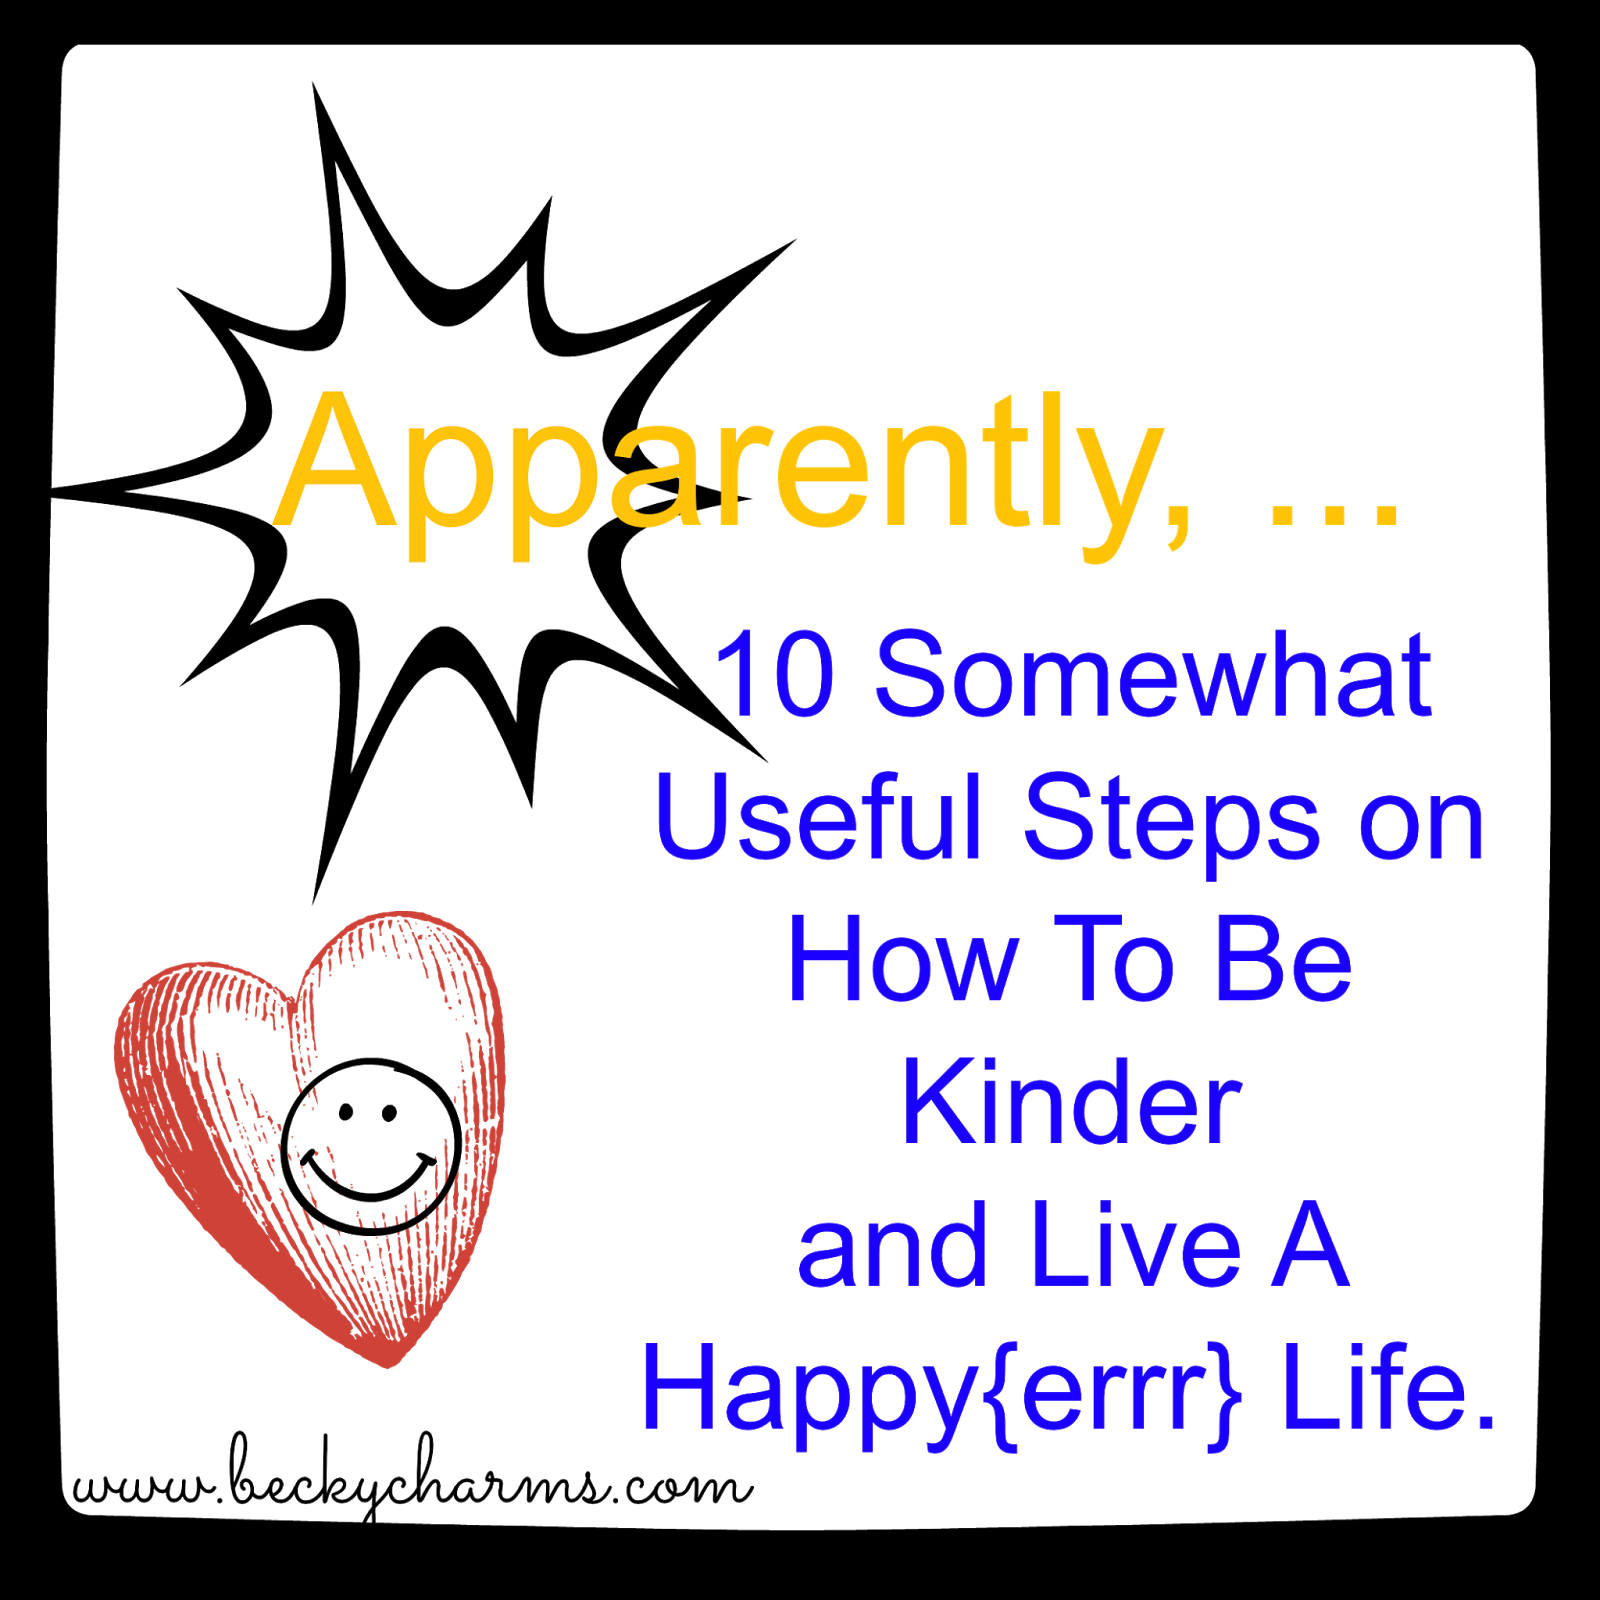 10 Somewhat Useful Steps on How To Be Kinder and Live A Happy{errr} Life